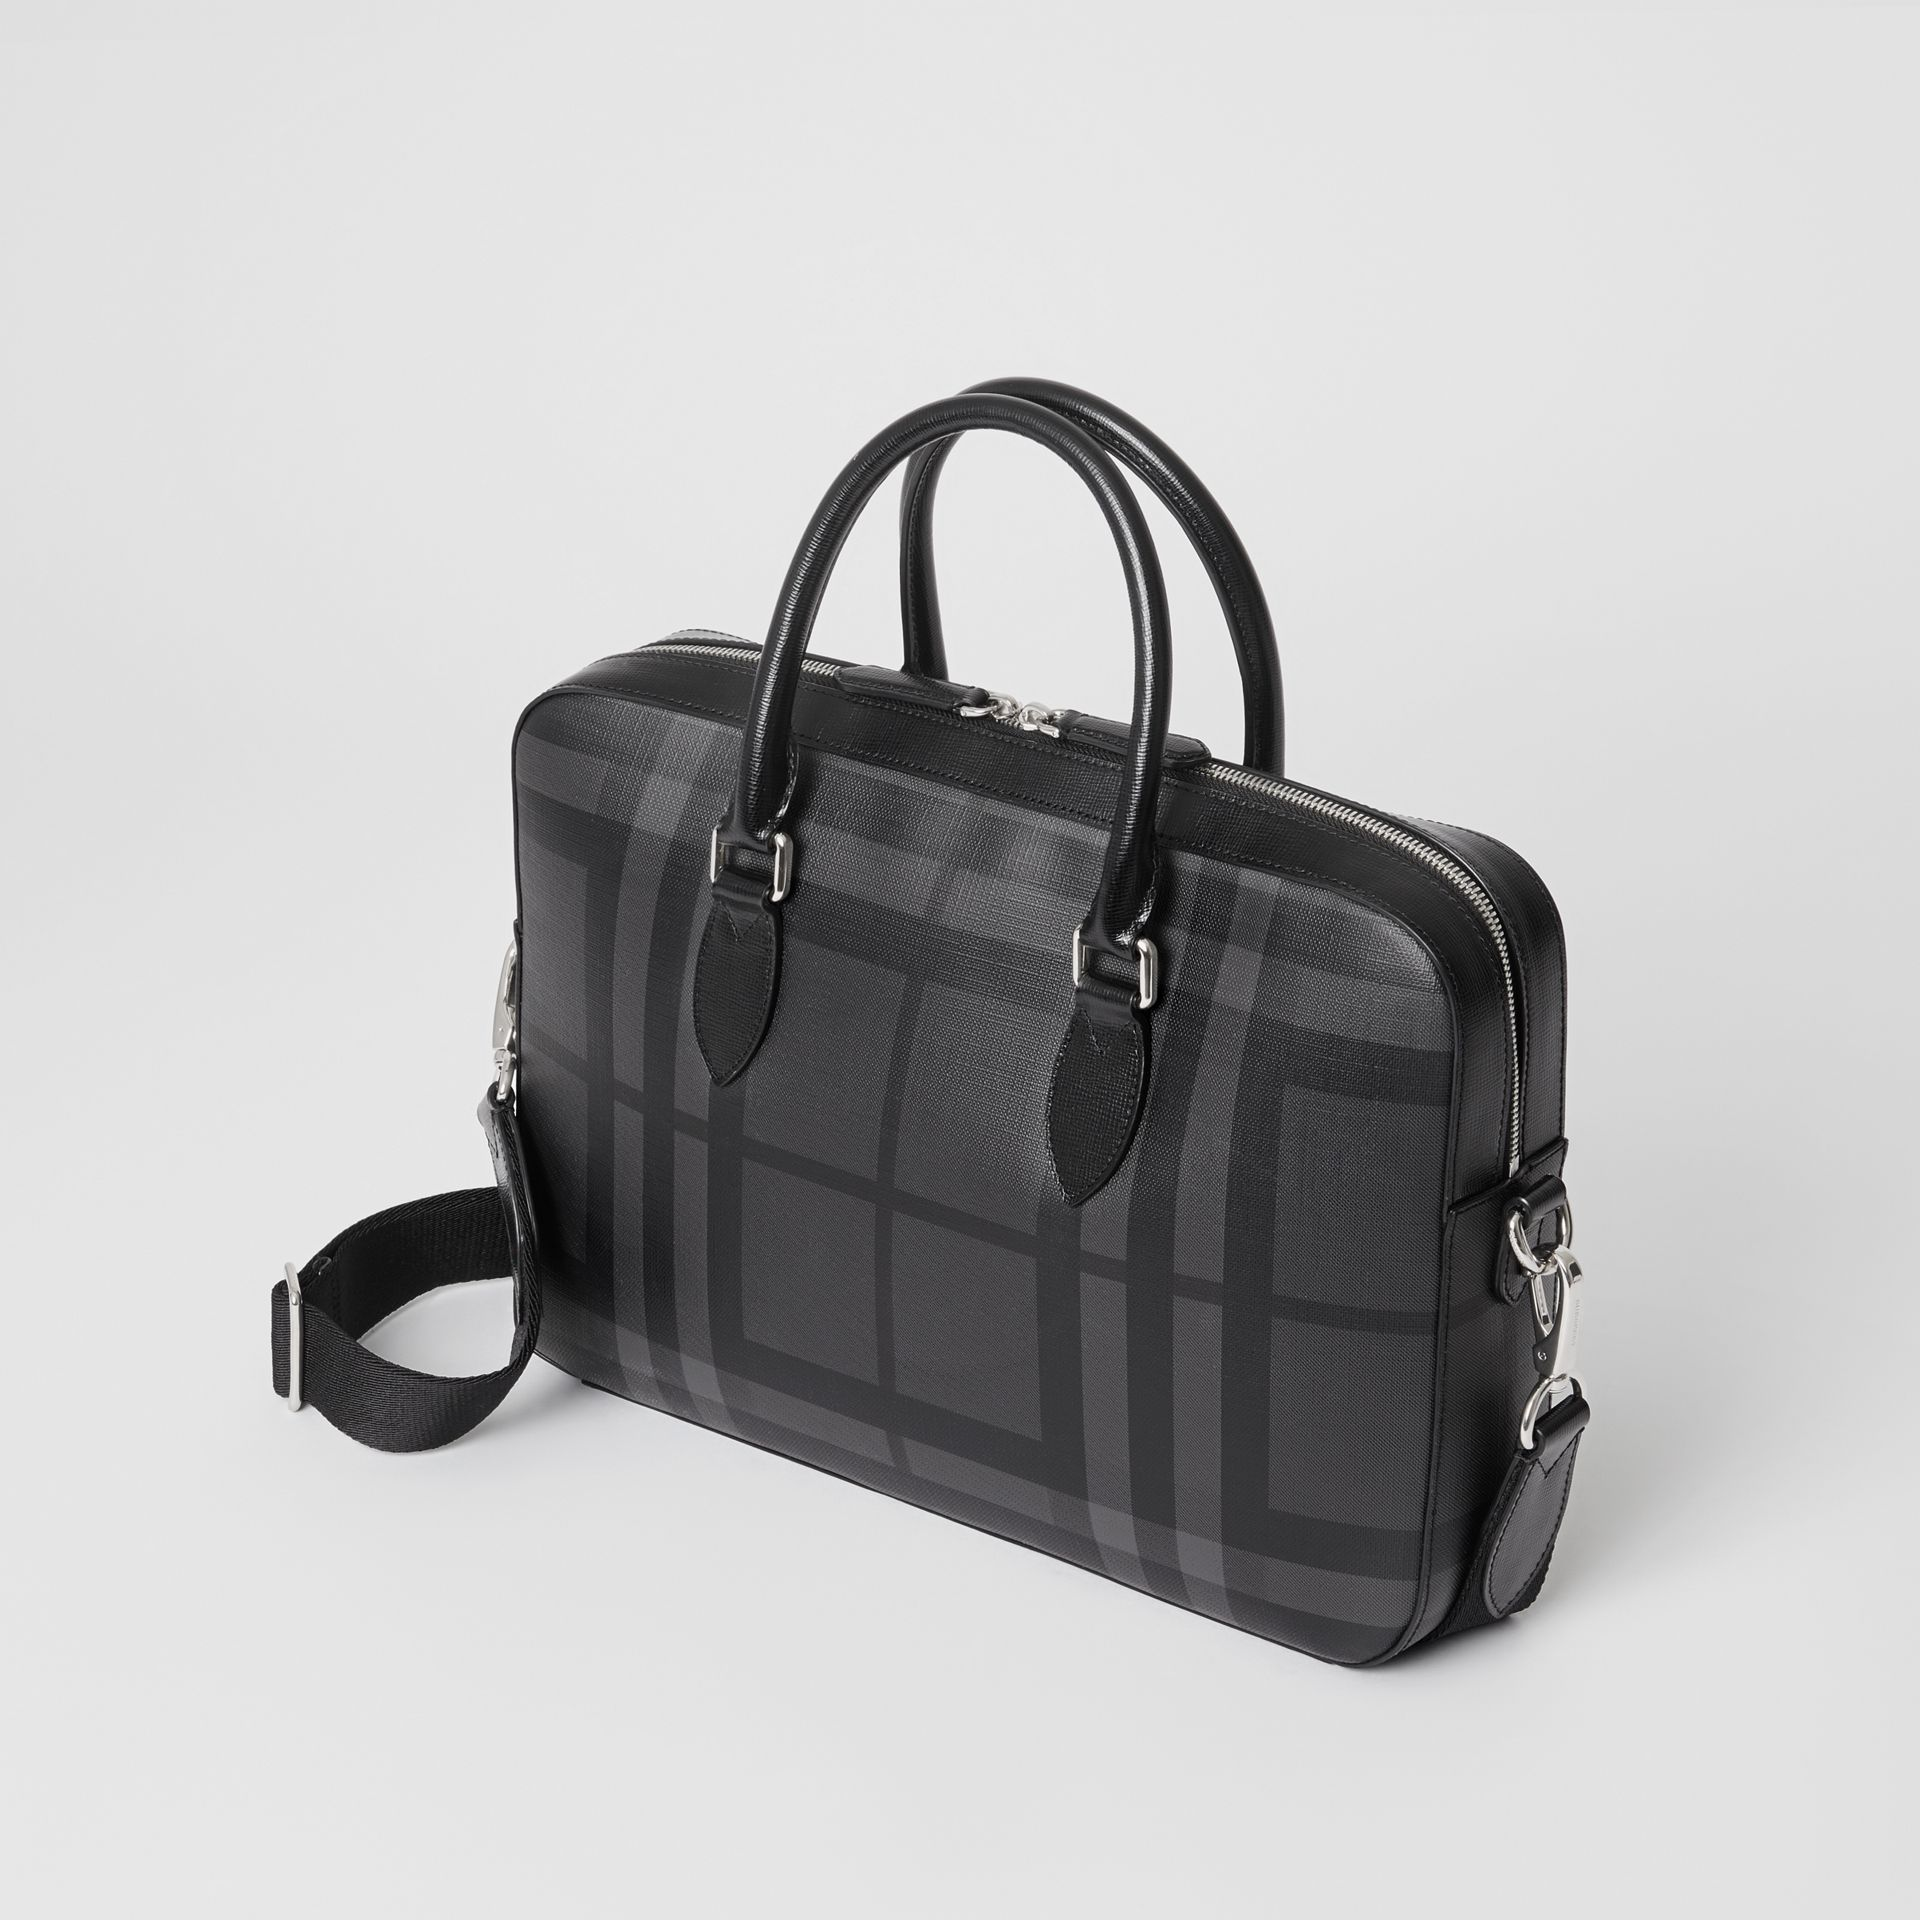 Sac The Barrow fin avec motif London check (Anthracite/noir) - Homme | Burberry - photo de la galerie 4